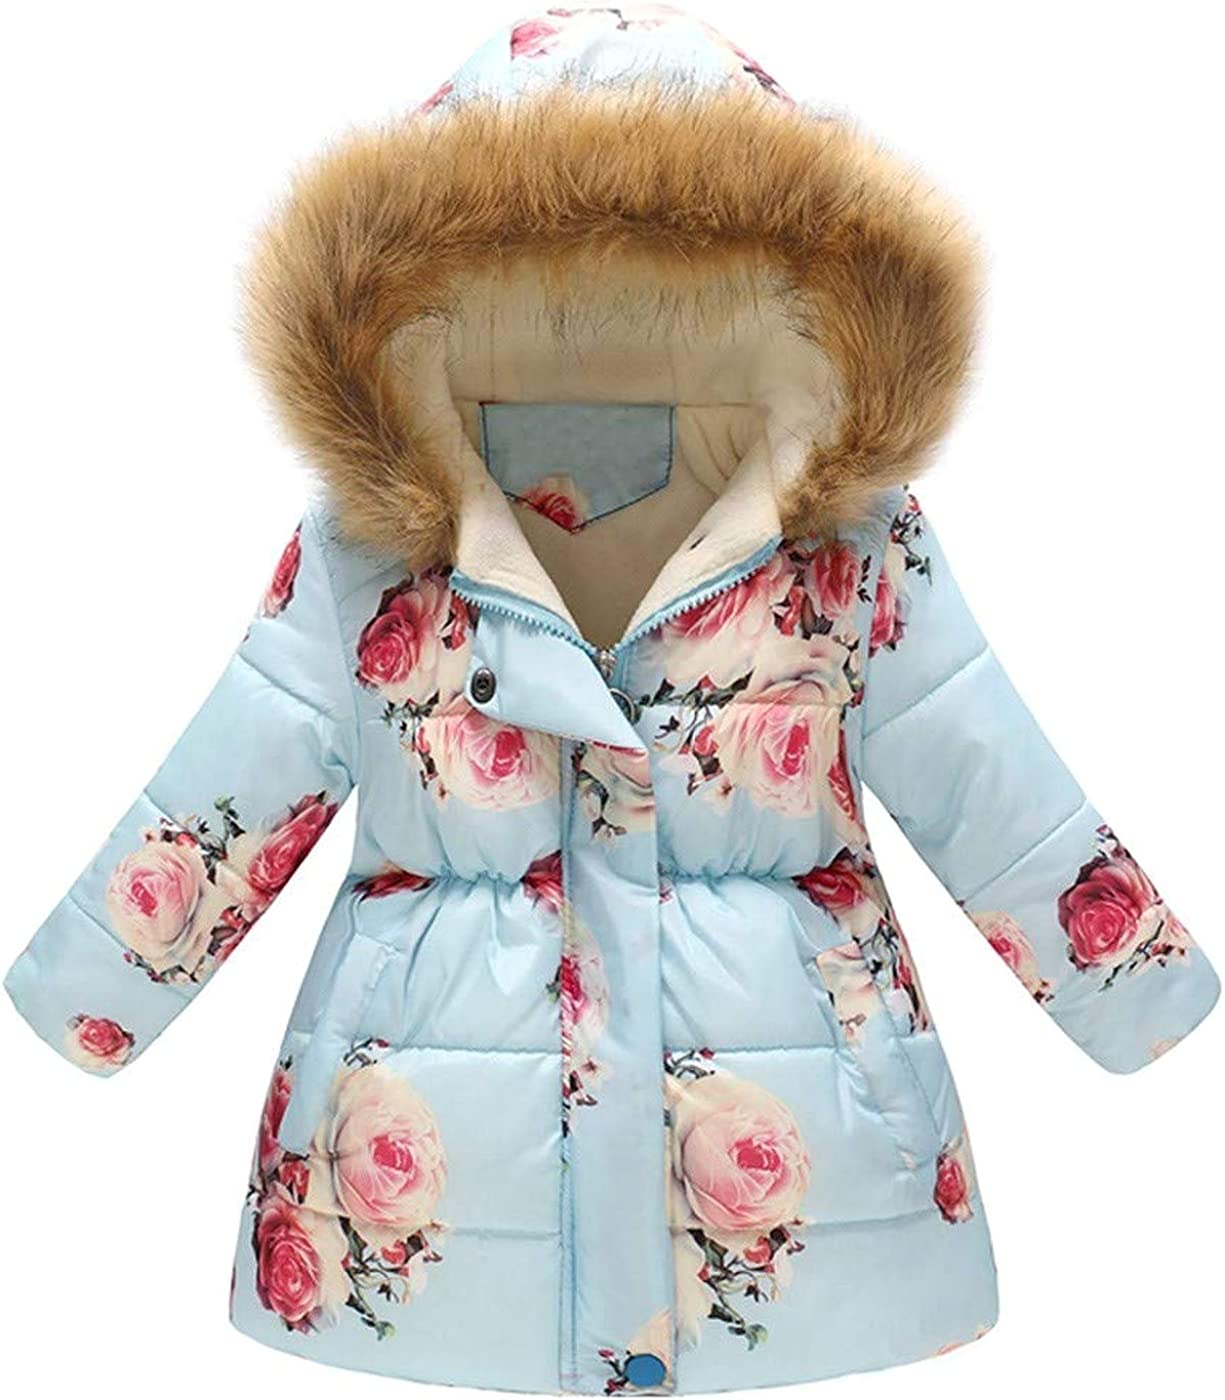 Girls-Boys-Baby Cute Floral Thick Warm Jacket Windproof Coat Overcoat